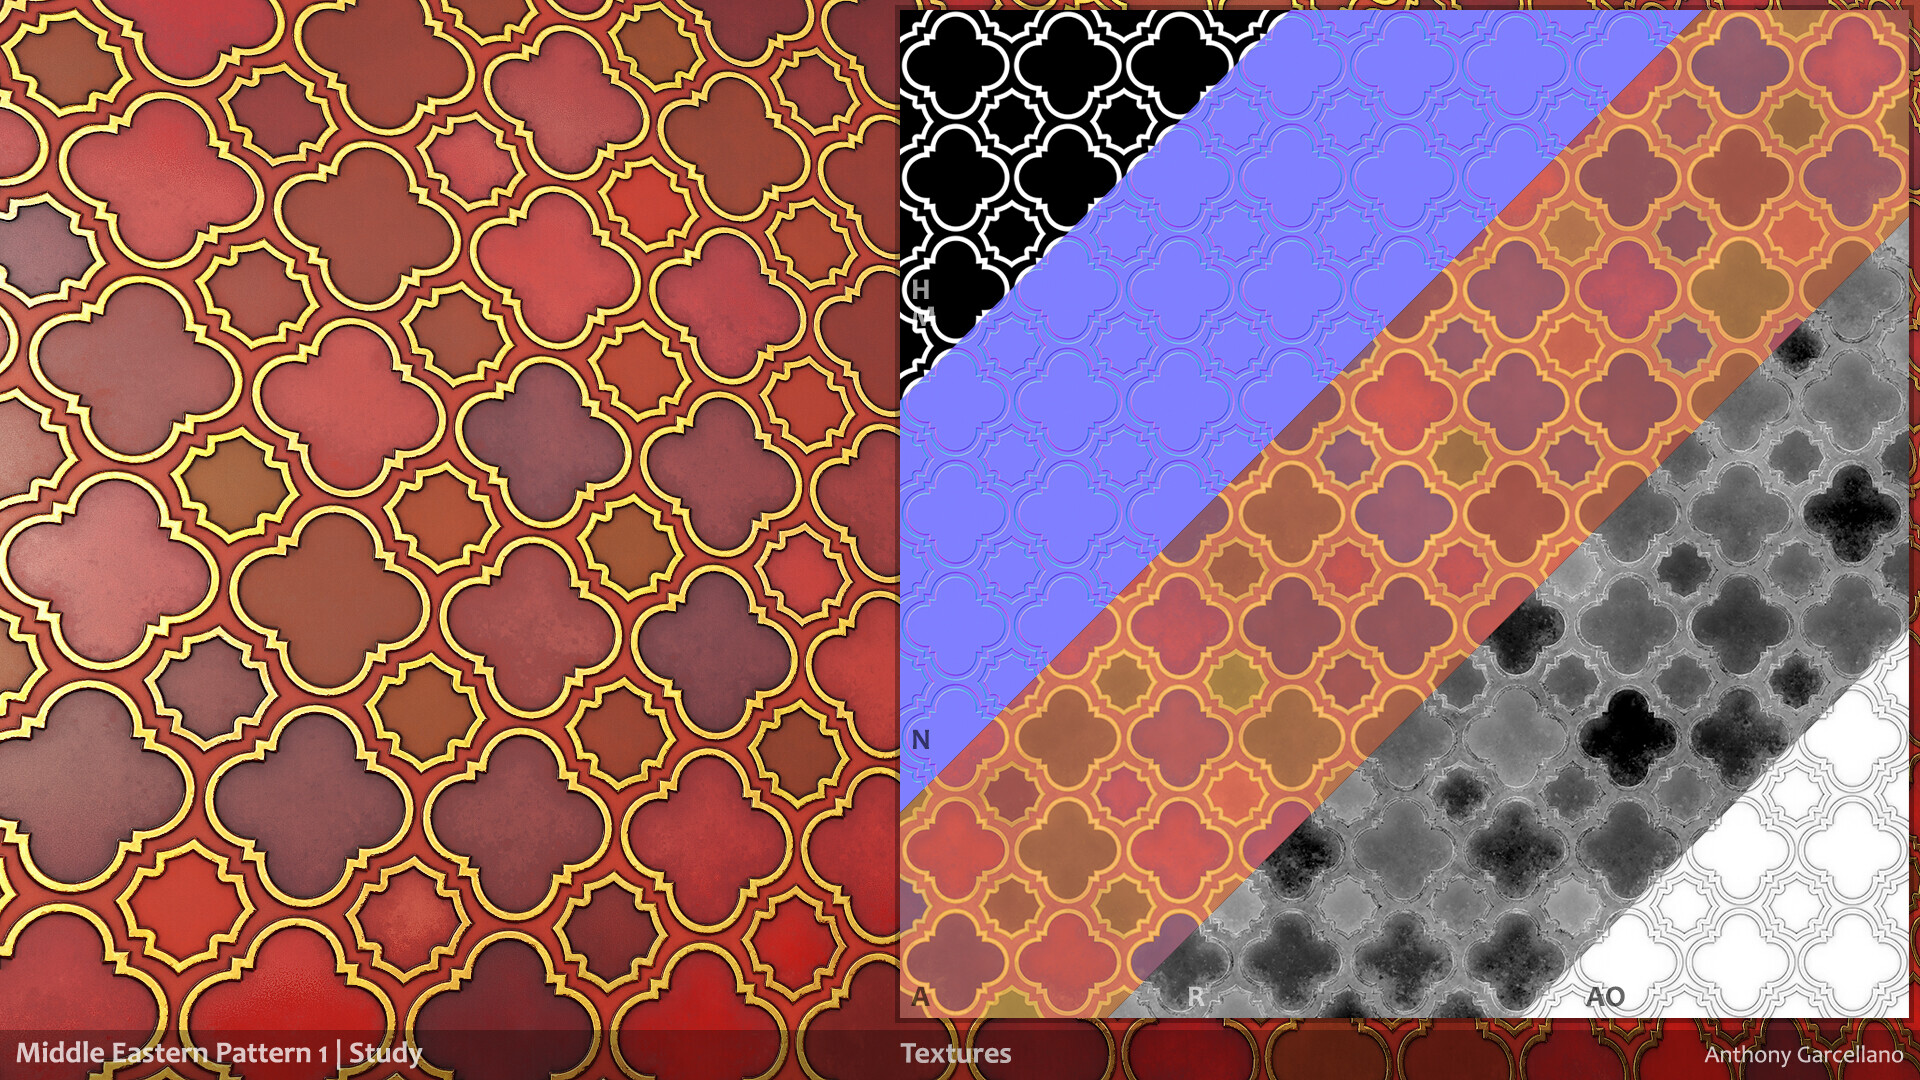 Anthony garcellano middleeasterpatterns1 textures anthonygarcellano